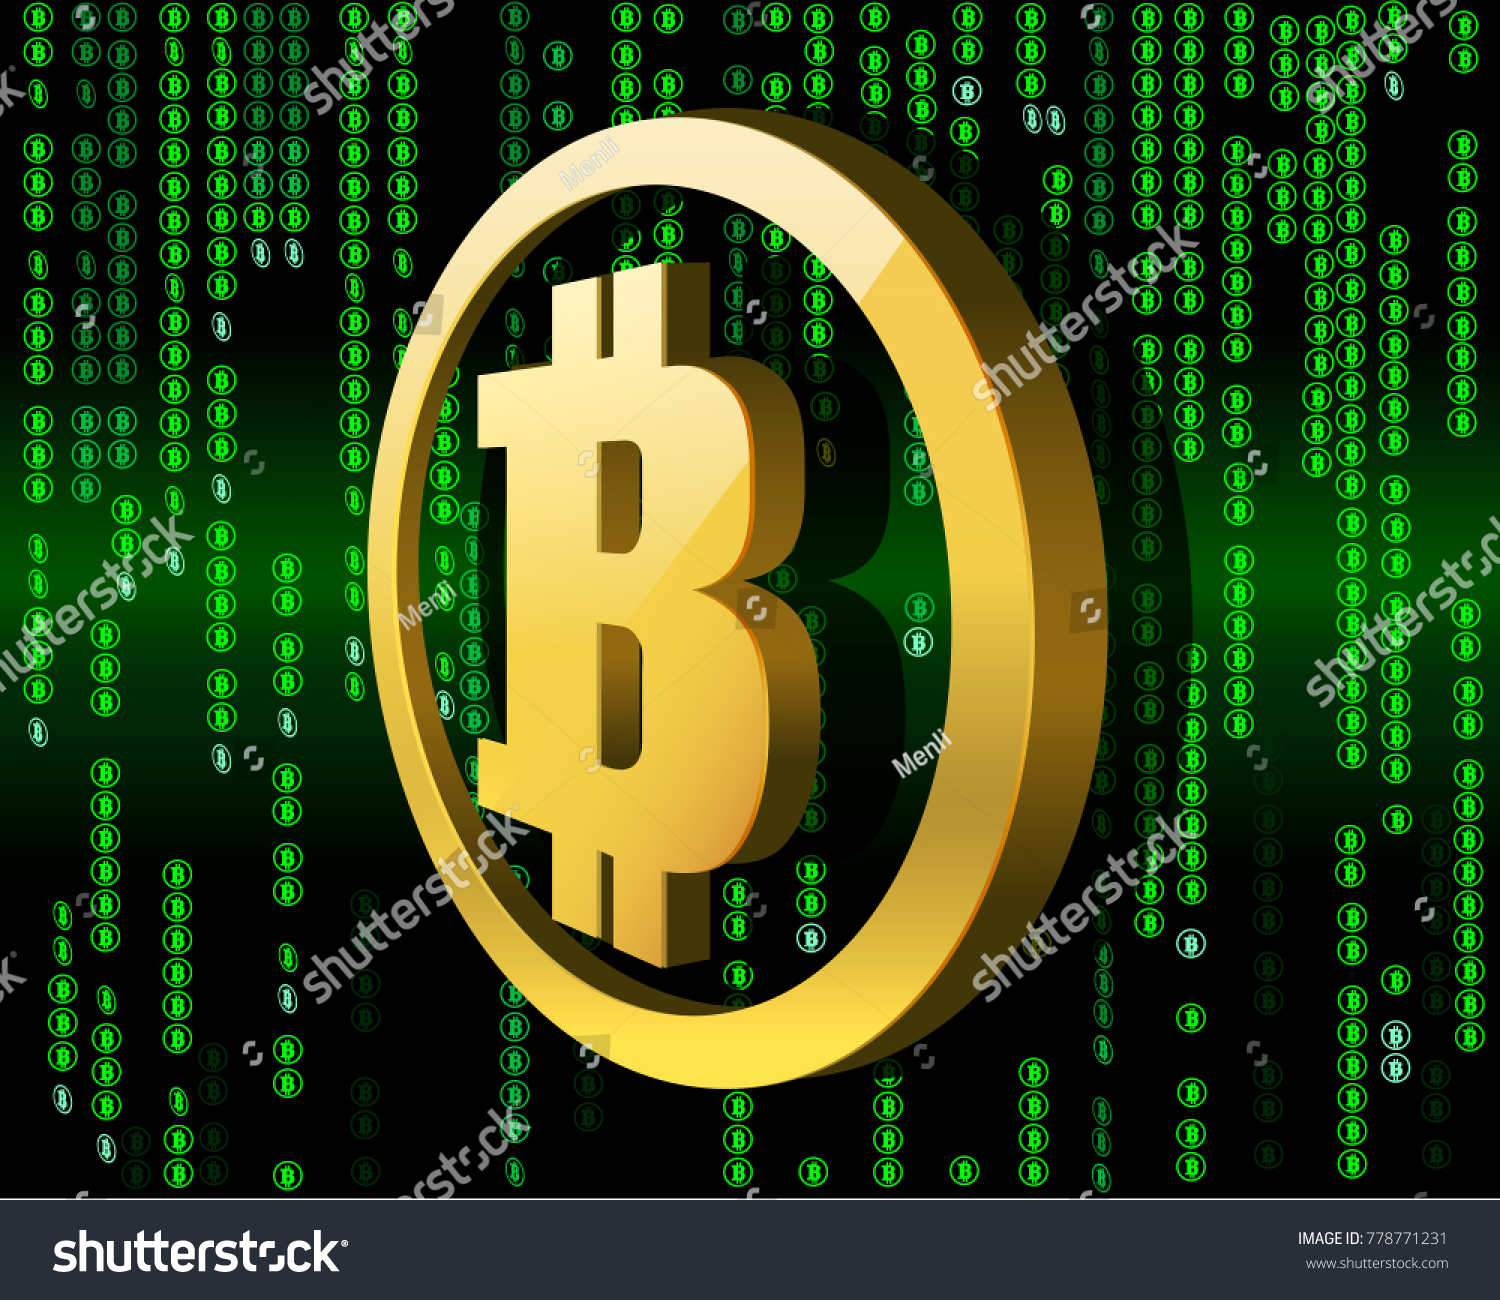 3 D Symbol Bitcoin Dark Green Background Stock Vector Royalty Free